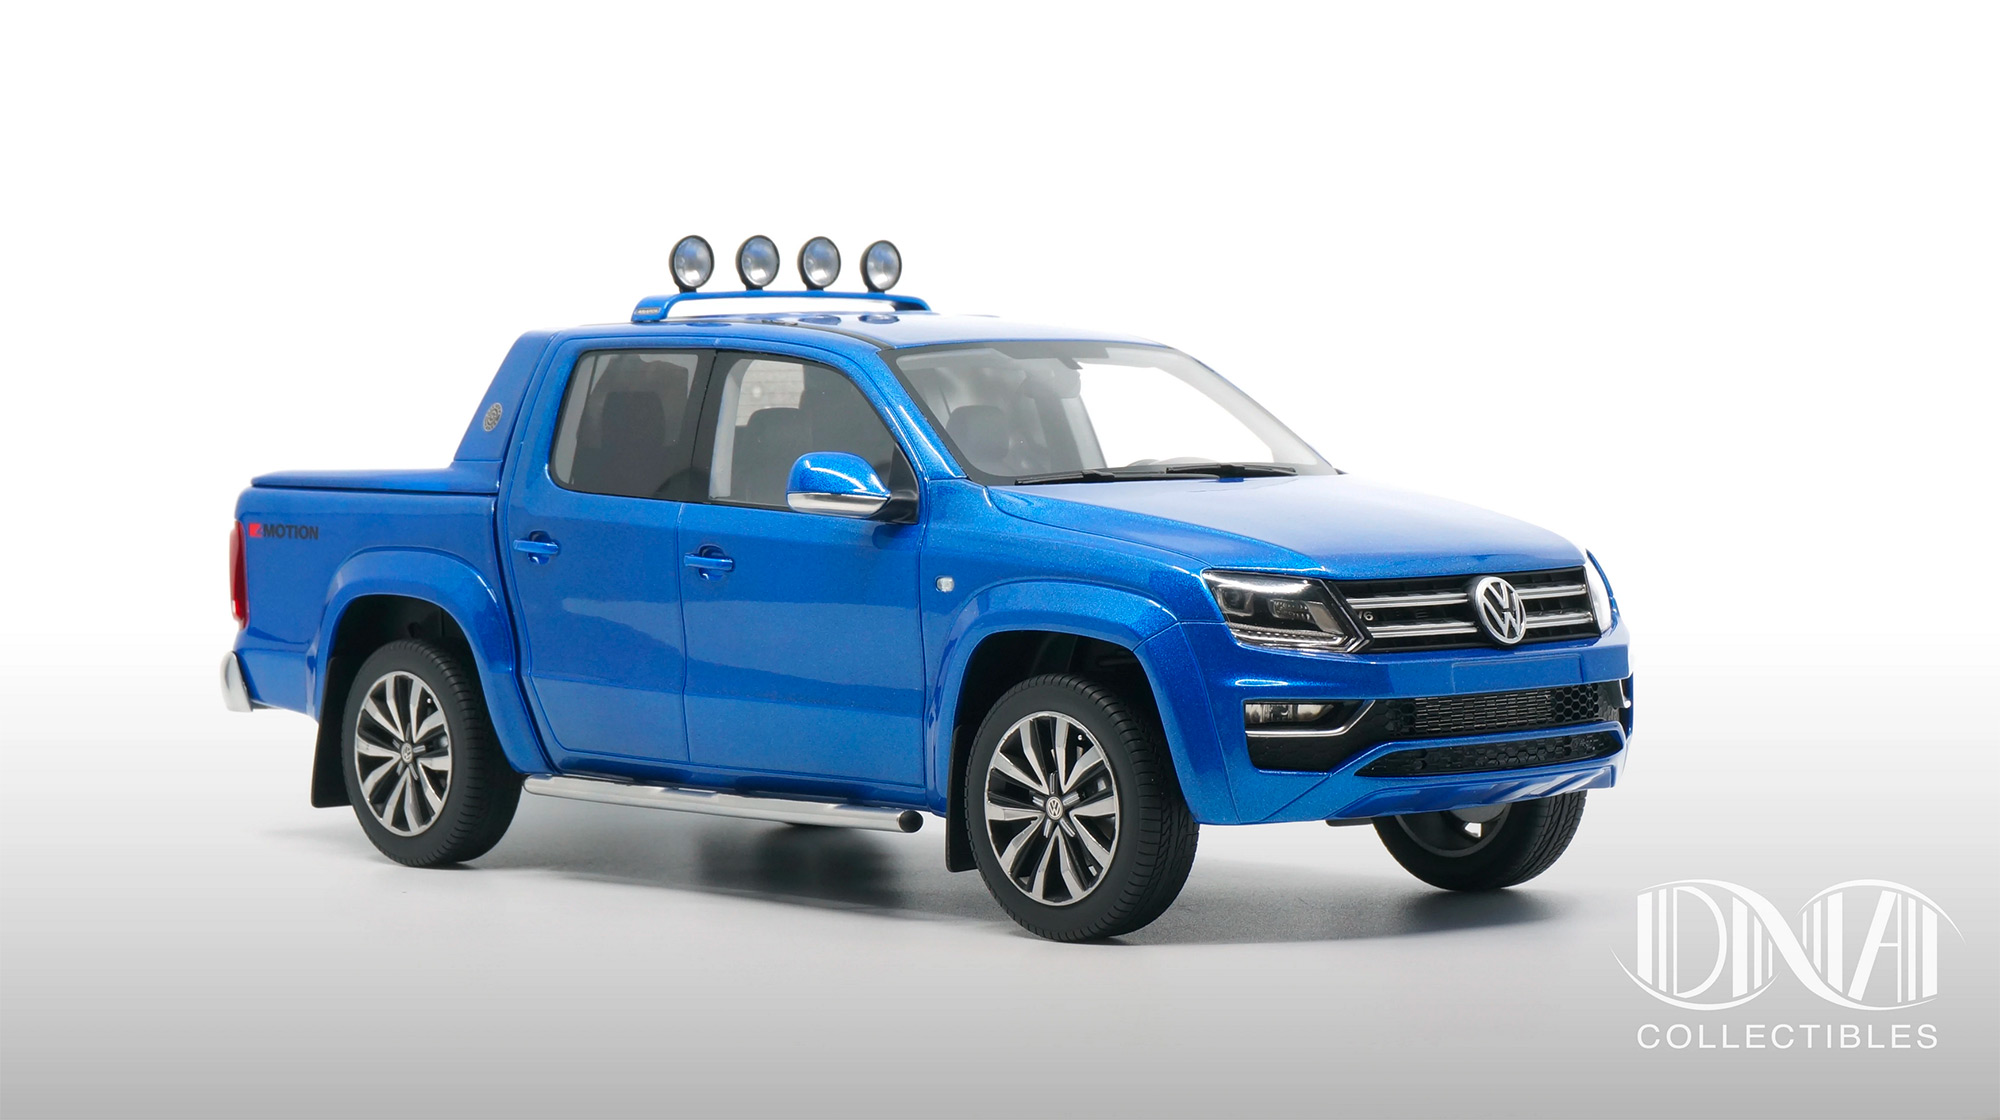 Volkswagen Amarok DNA Collectibles